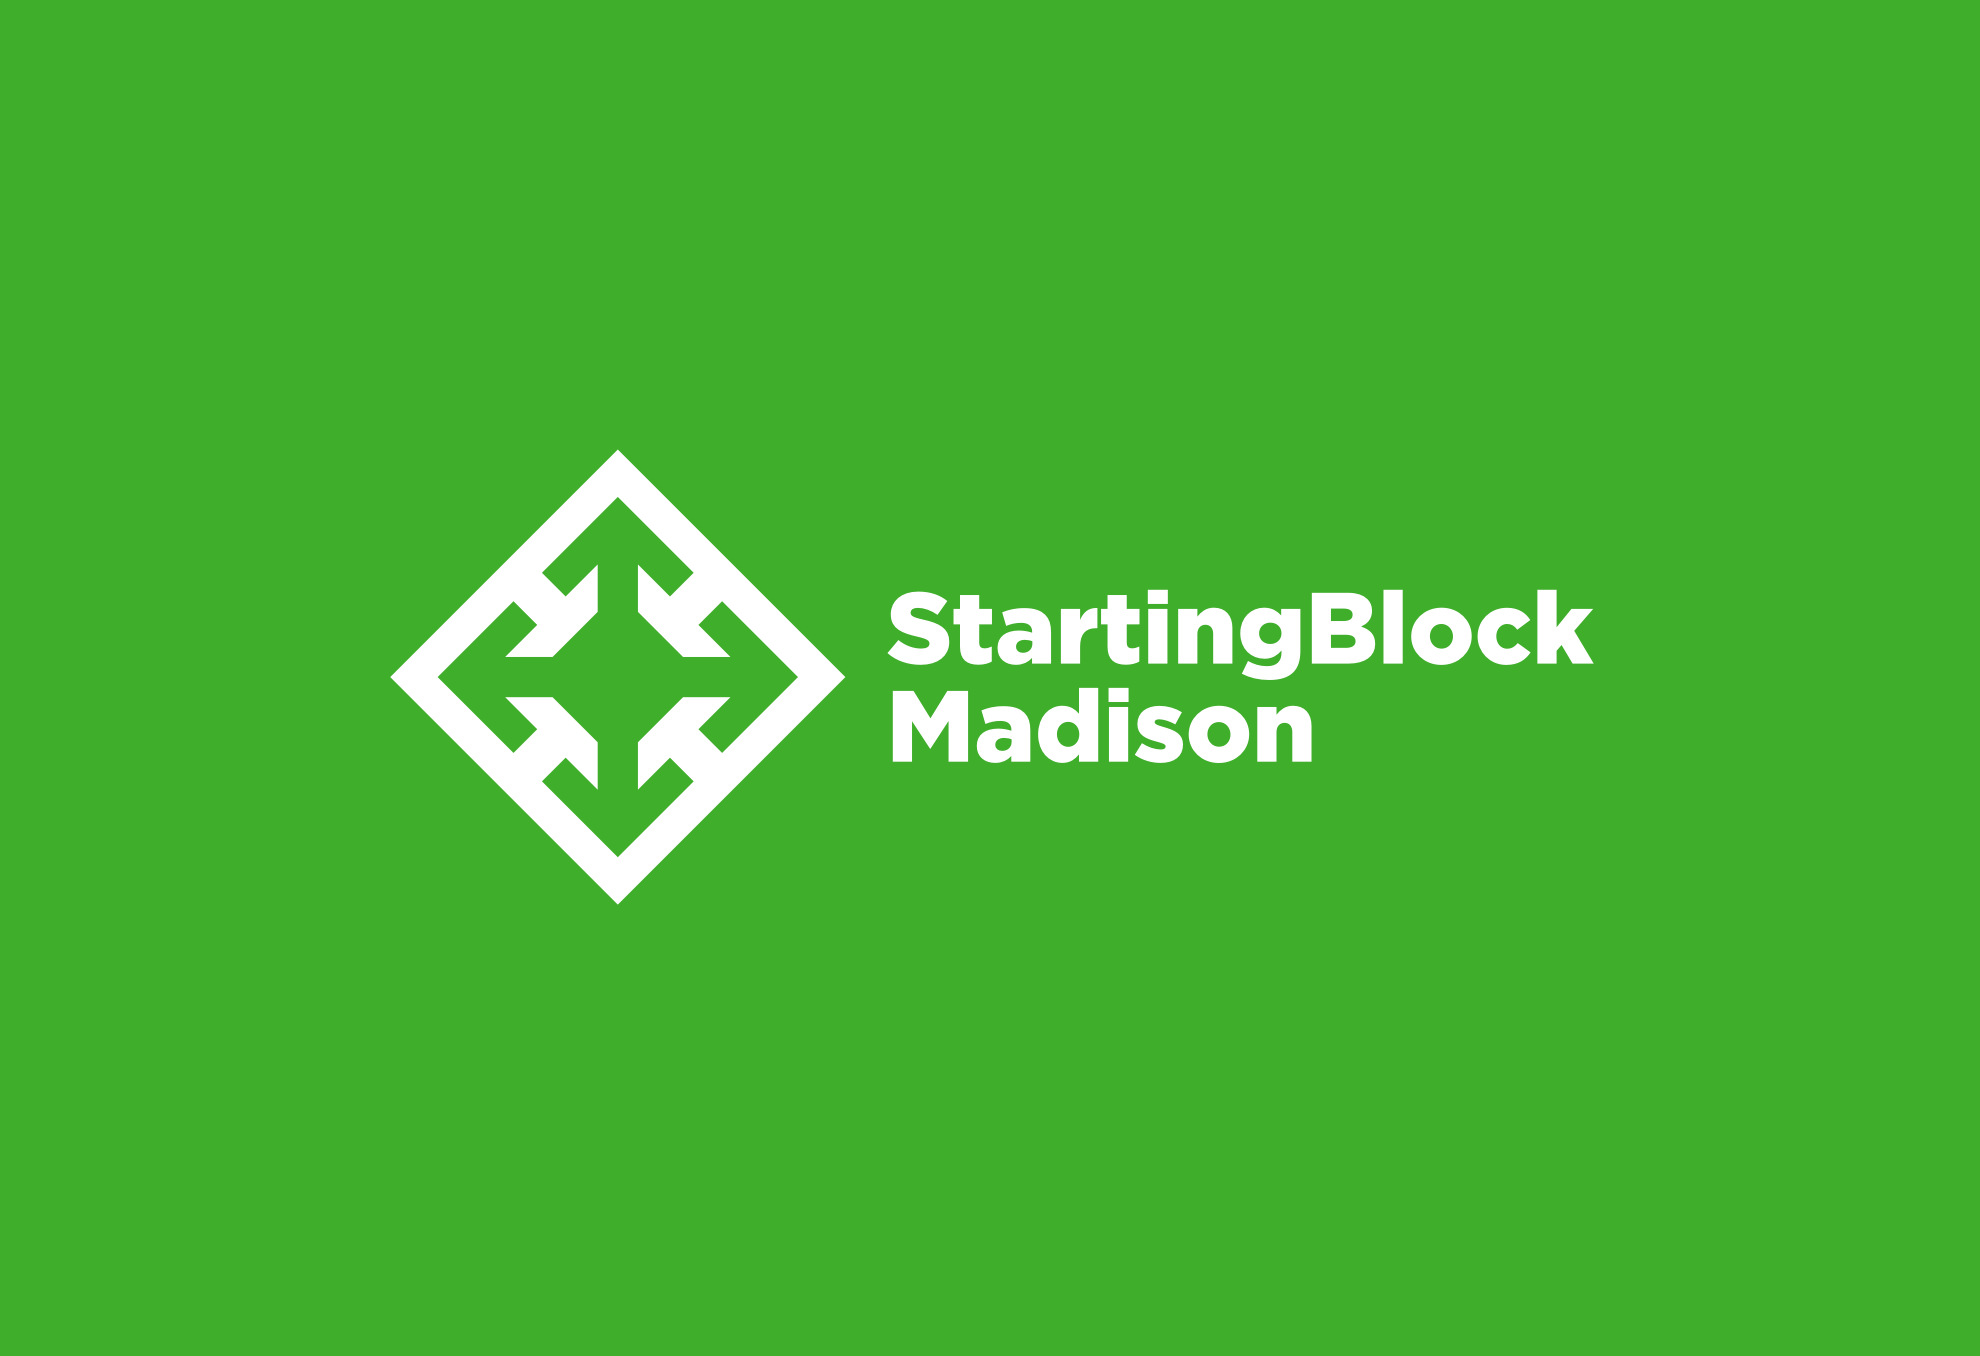 StartingBlock Madison Identity Design